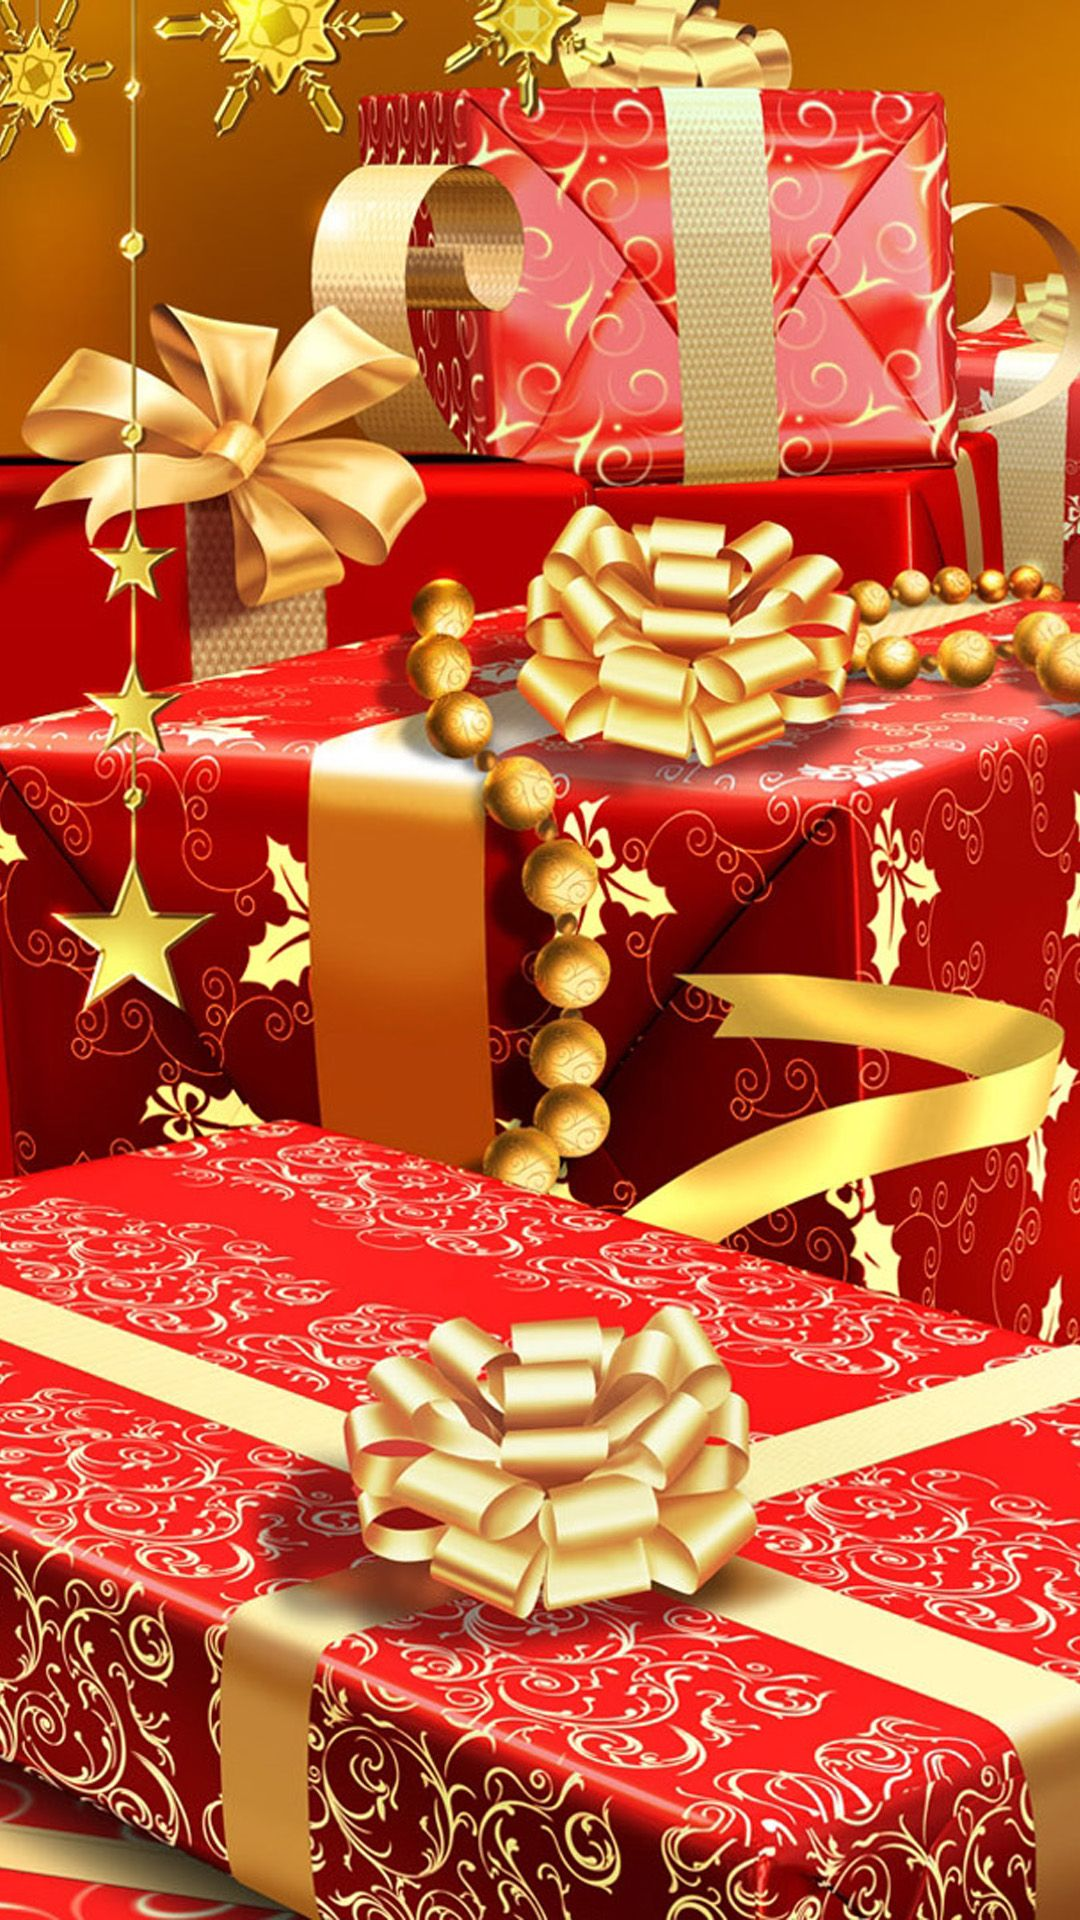 Christmas wallpapers red christmas decorations and gifts on christmas - Rich Christmas Gifts Iphone 6 Wallpaper